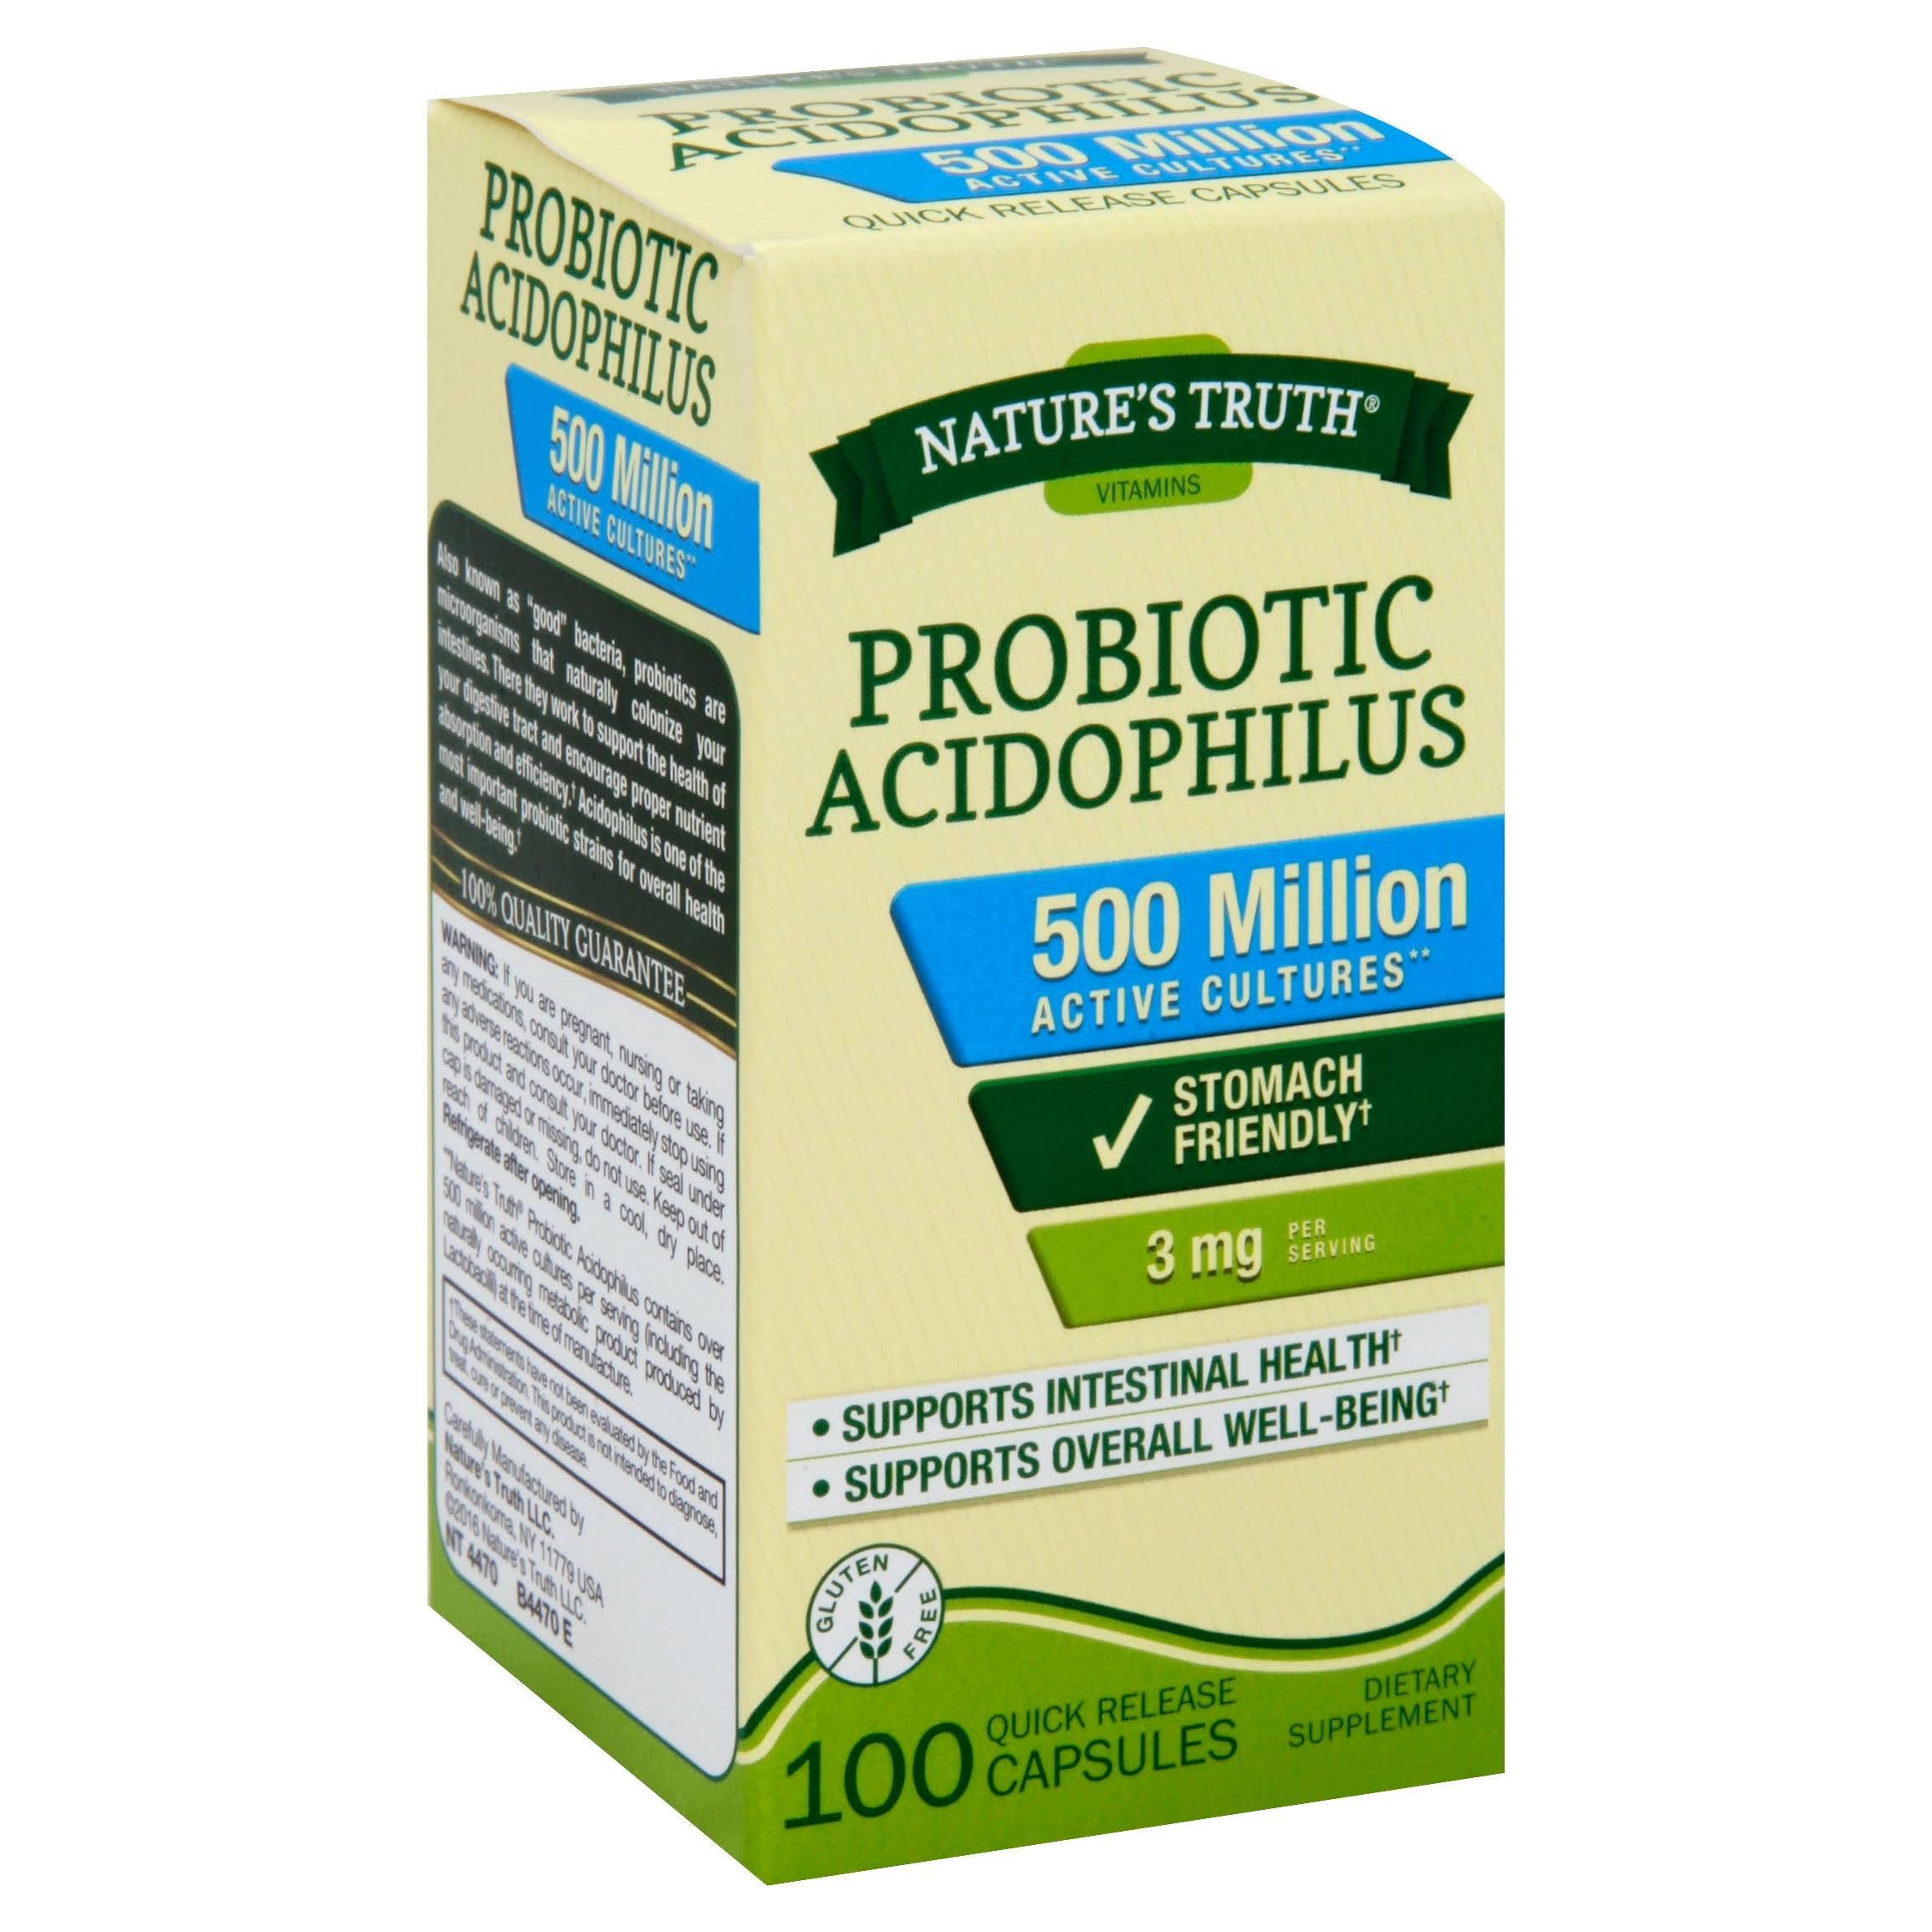 Nature's Truth Probiotic Acidophilus Supplement - 100 Count